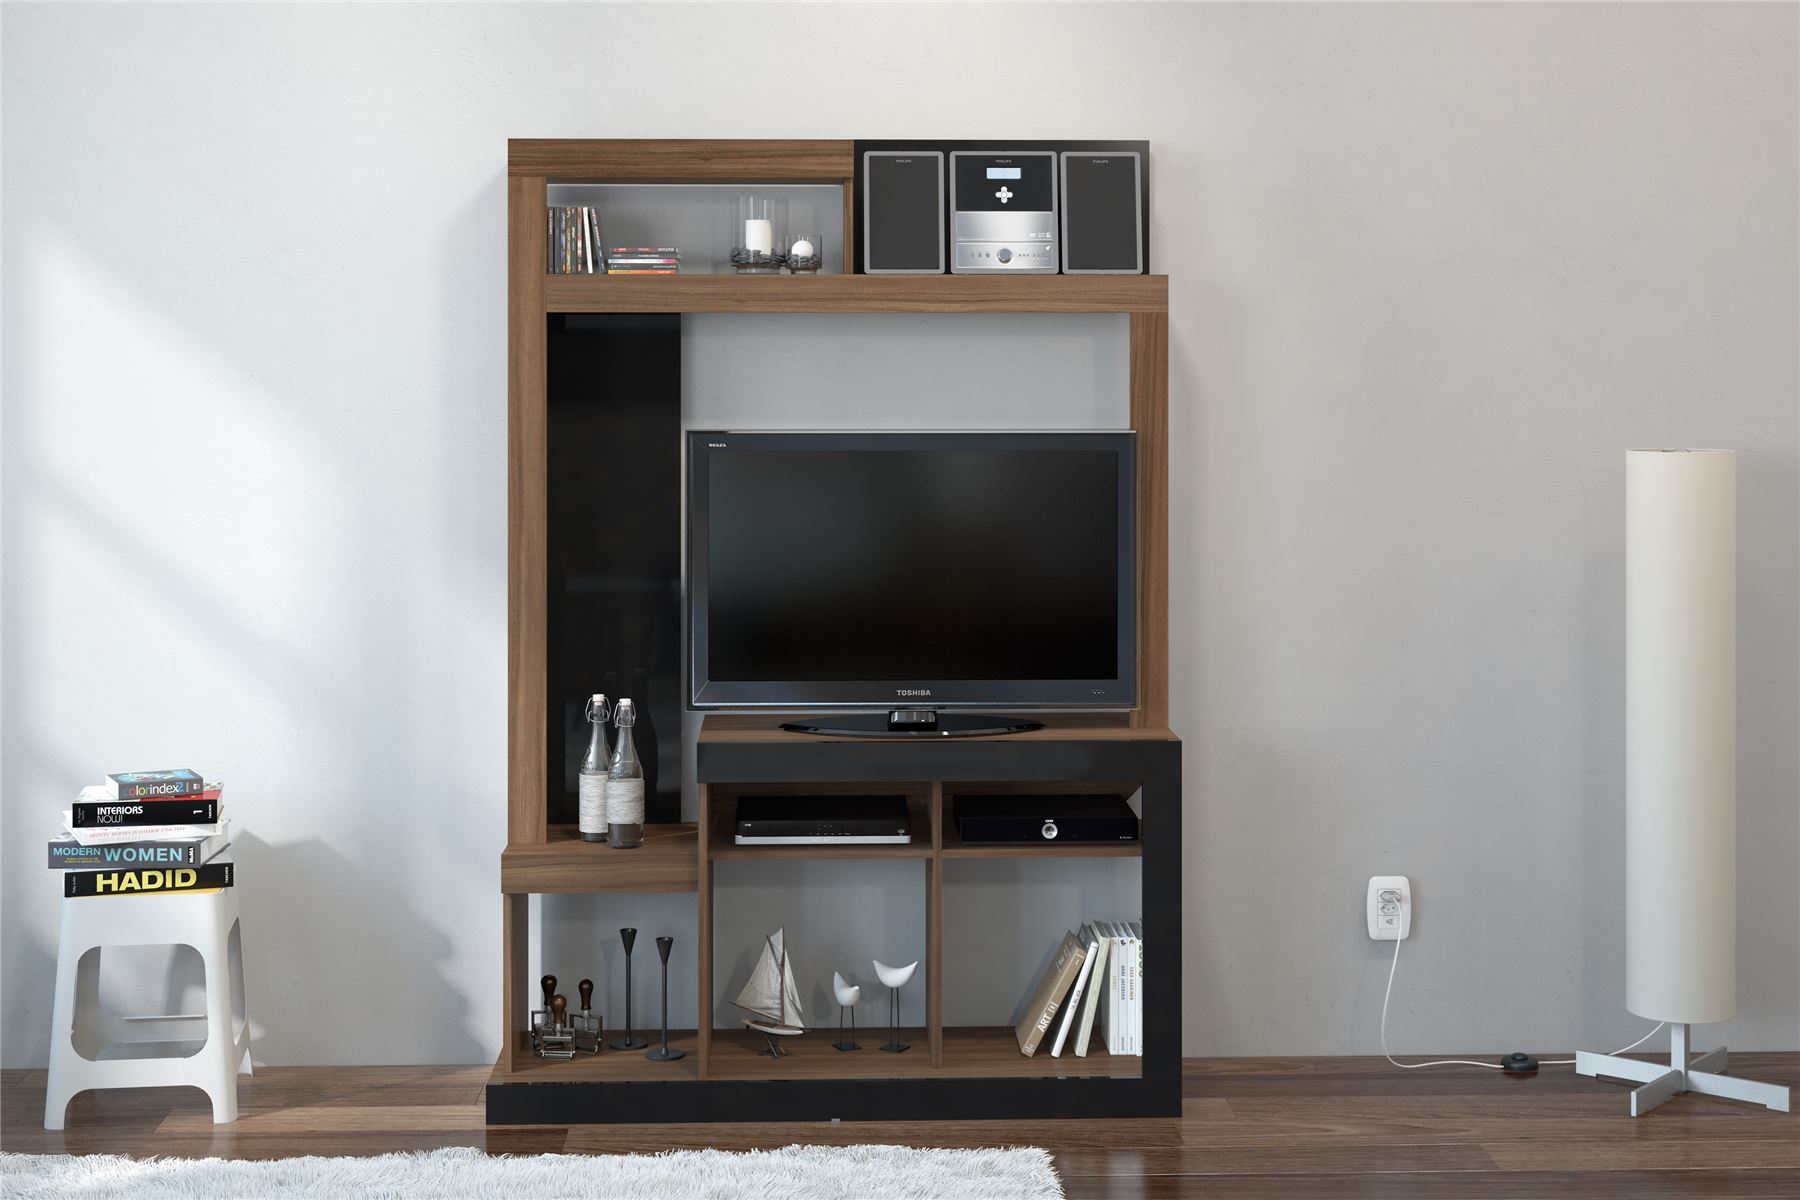 Details about Orka Black Gloss Walnut Cupboard TV Entertainment Wall Unit  Stand Cabinet 81f2ba318